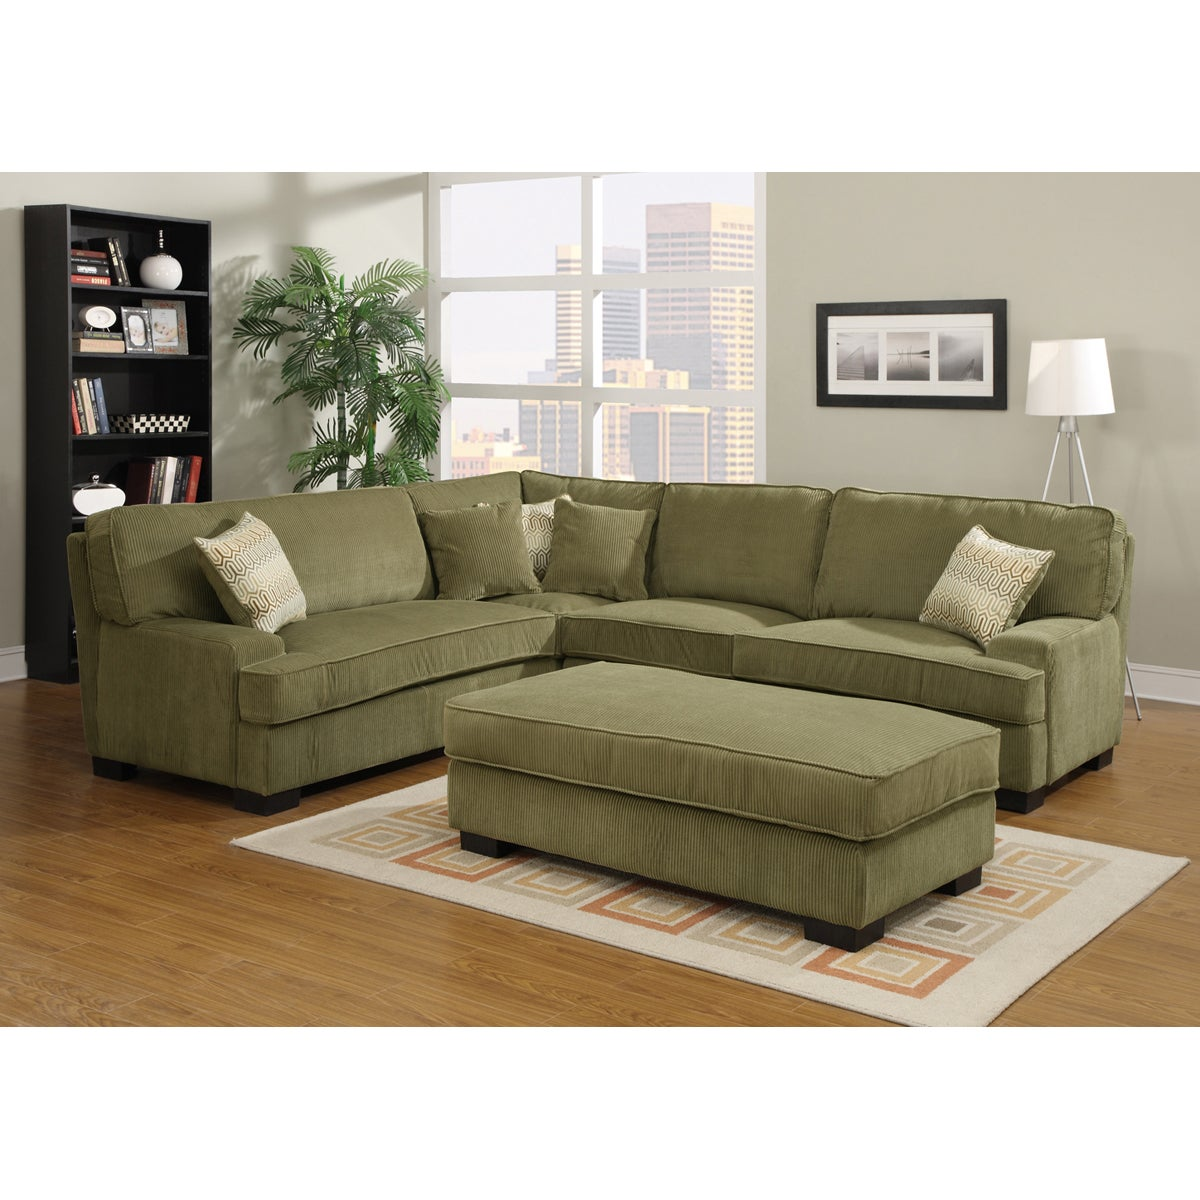 Shop noah olive green living room set free shipping today overstock com 7713060